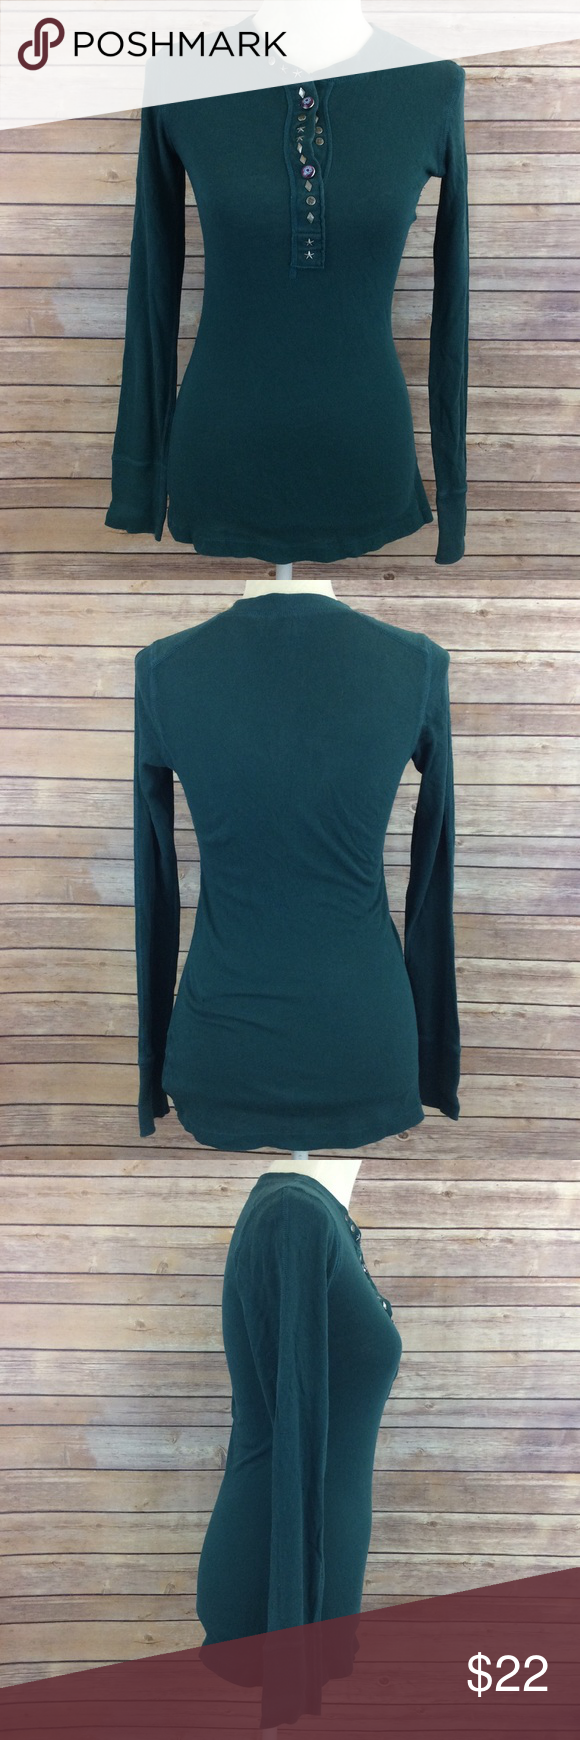 """Free People Green Button Long Sleeve Tee ⚜Bust: 16"""" ⚜Length: 27""""  🎀 Two Front Button Closure  🎀Condition: No Rips; No Stains  🎀100% Cotton  📦 I ship orders within 24 Hours! {Excluding Weekends}📦  🚫No Trades🚫No Holds🚫 Free People Tops Tees - Long Sleeve"""